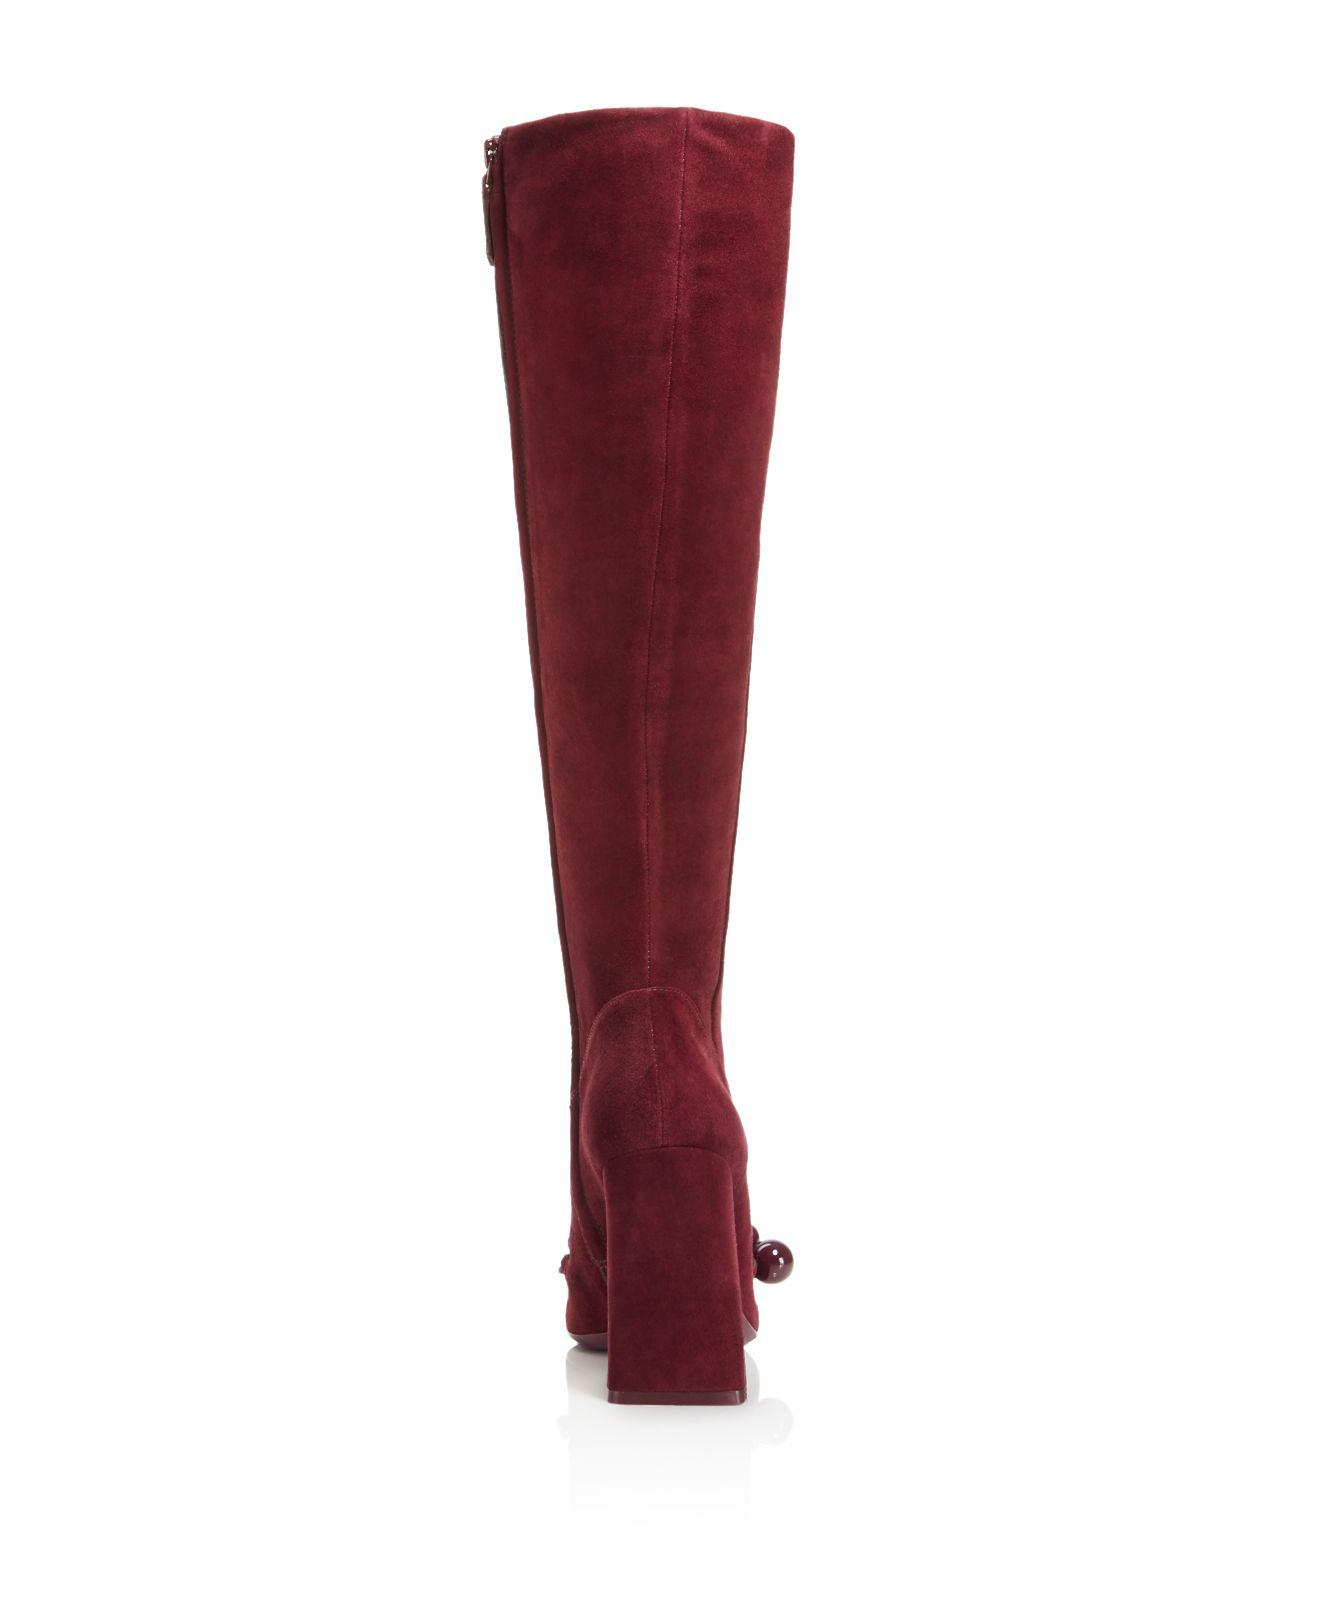 6523f5de1 Lyst - Tory Burch Addison Suede Square Toe Knee Boots in Red